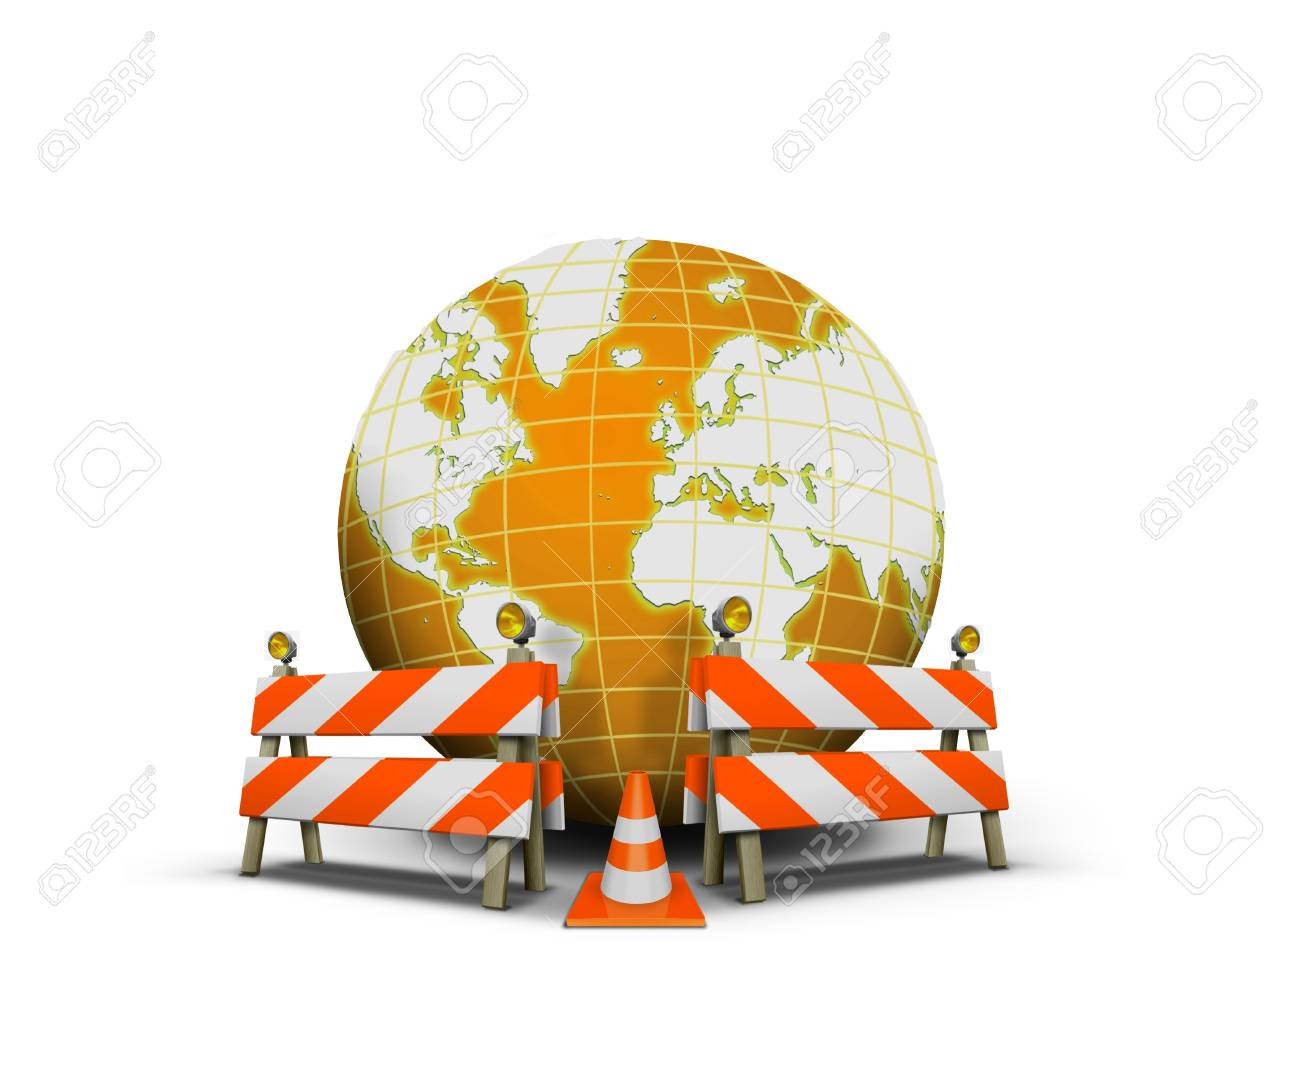 Website under construction with globe and barrier Stock Photo - 17362418